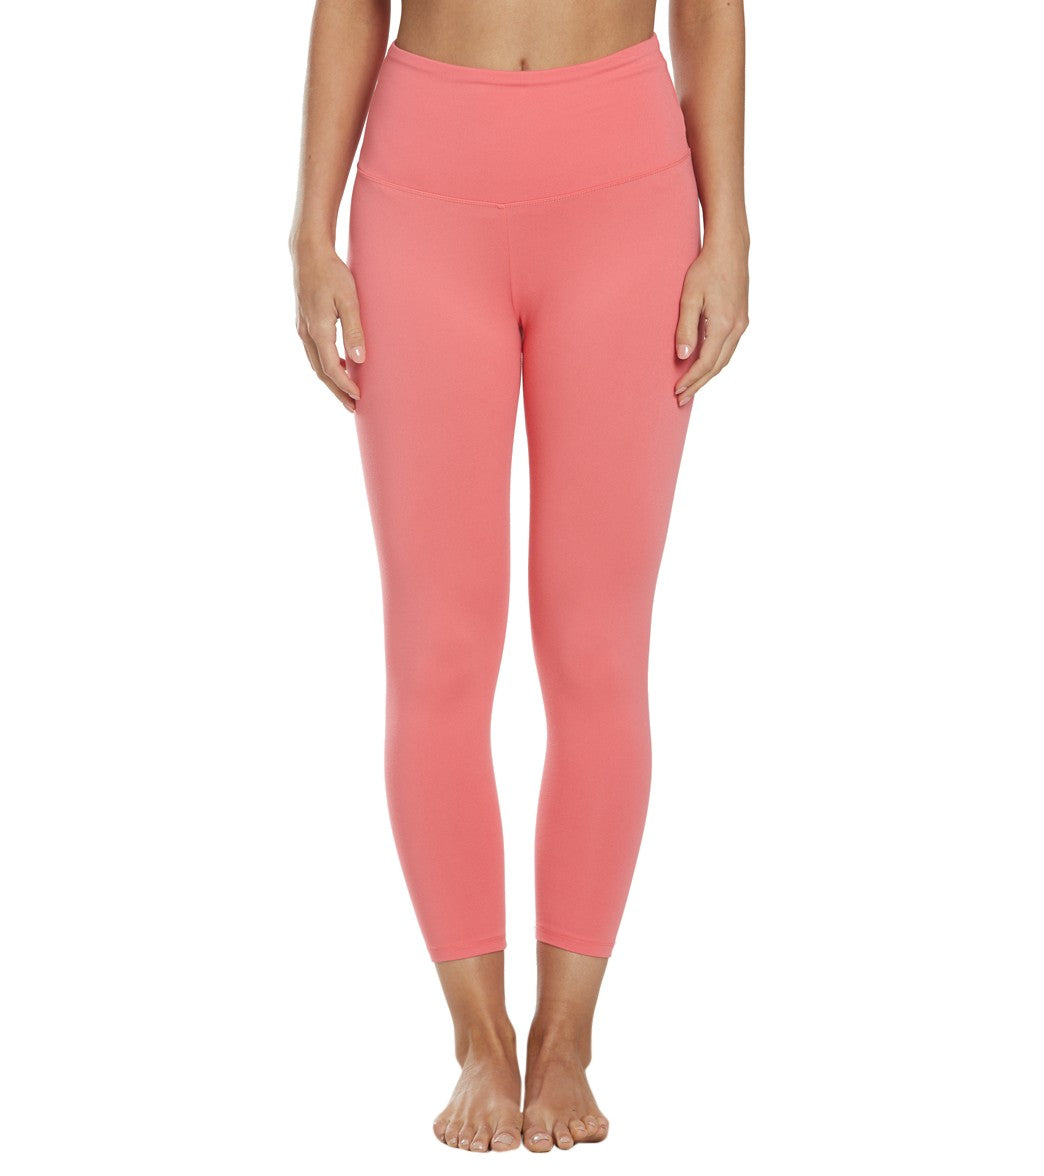 Balance Collection Ultra High Waisted Yoga Capri Pants - Rose Of Sharon Cotton